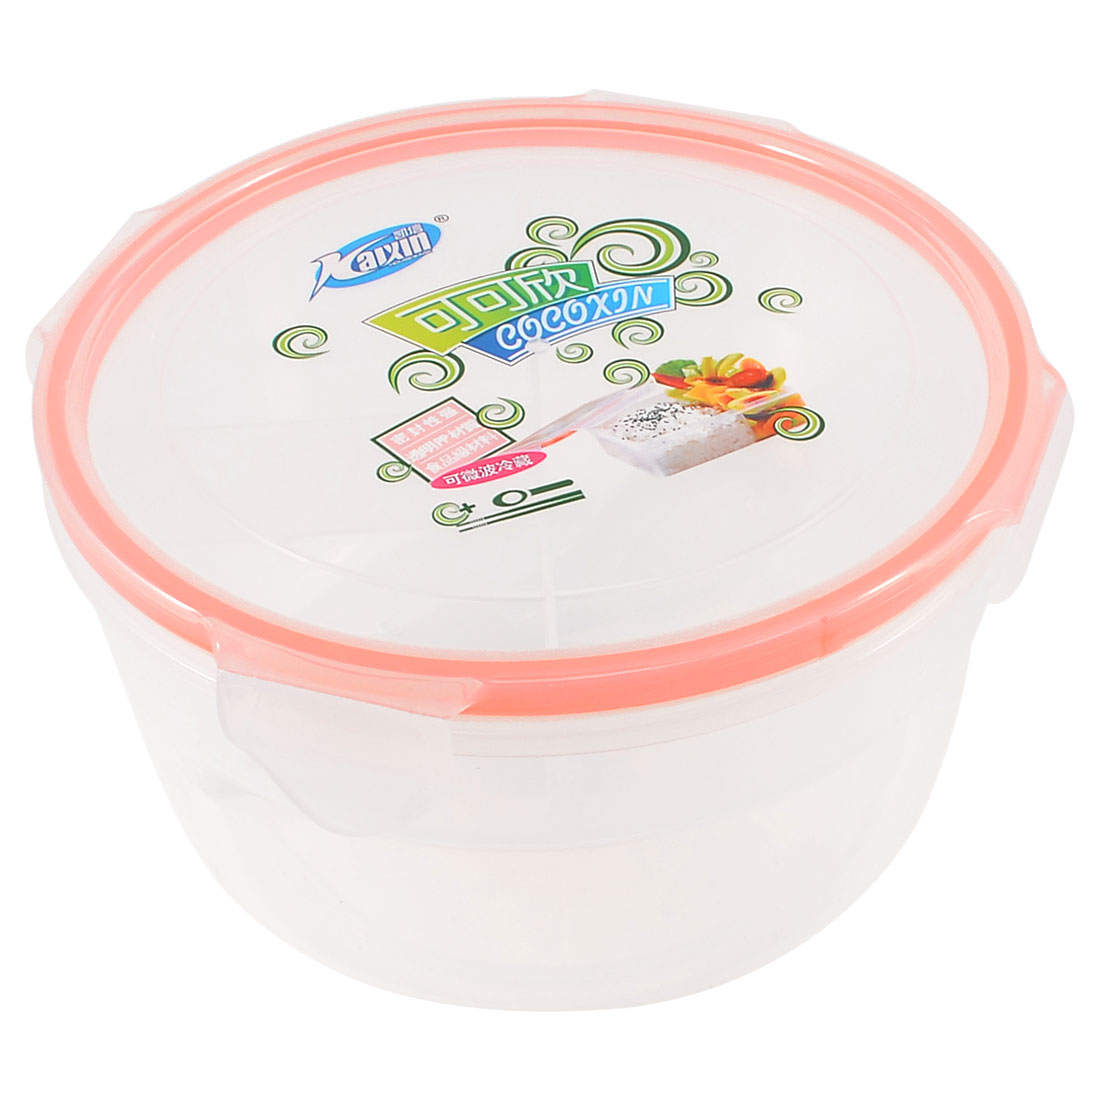 Unique Bargains Microwave Oven 2-layer Round Shape Food Holder Lunch Box Orange Clear w Spoon